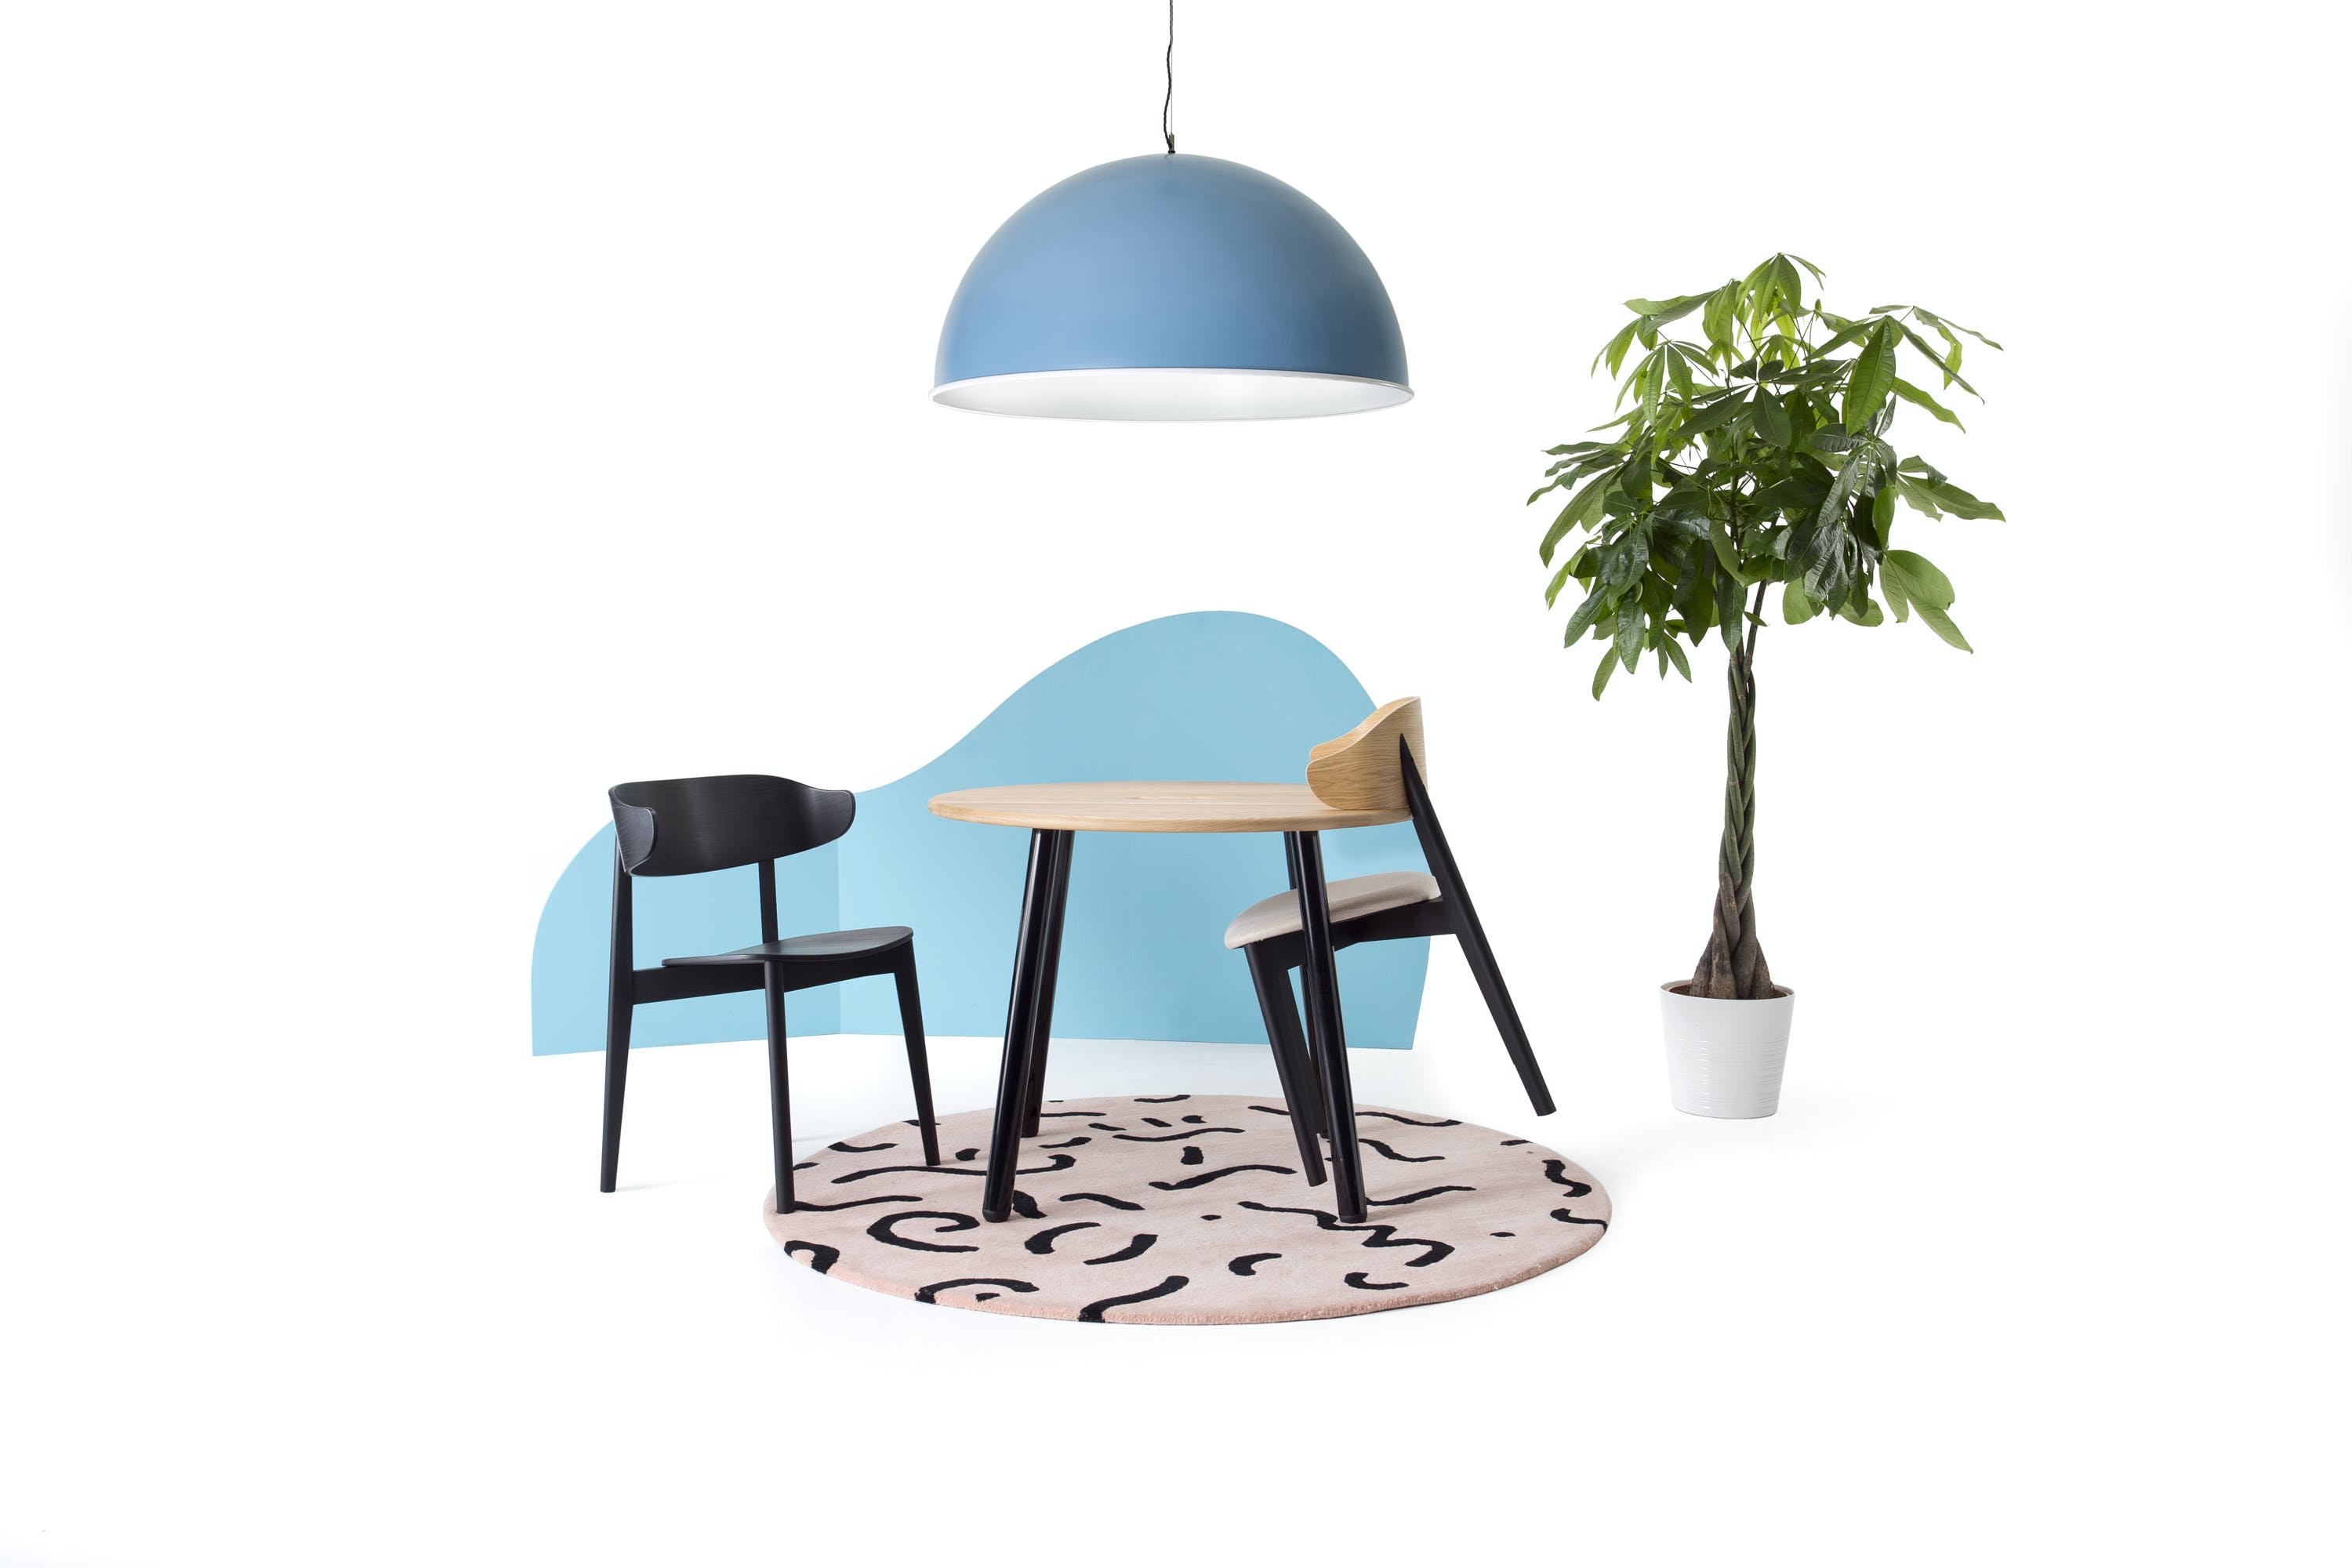 Deadgood-setter-chair-two-chairs-at-table-haute-living